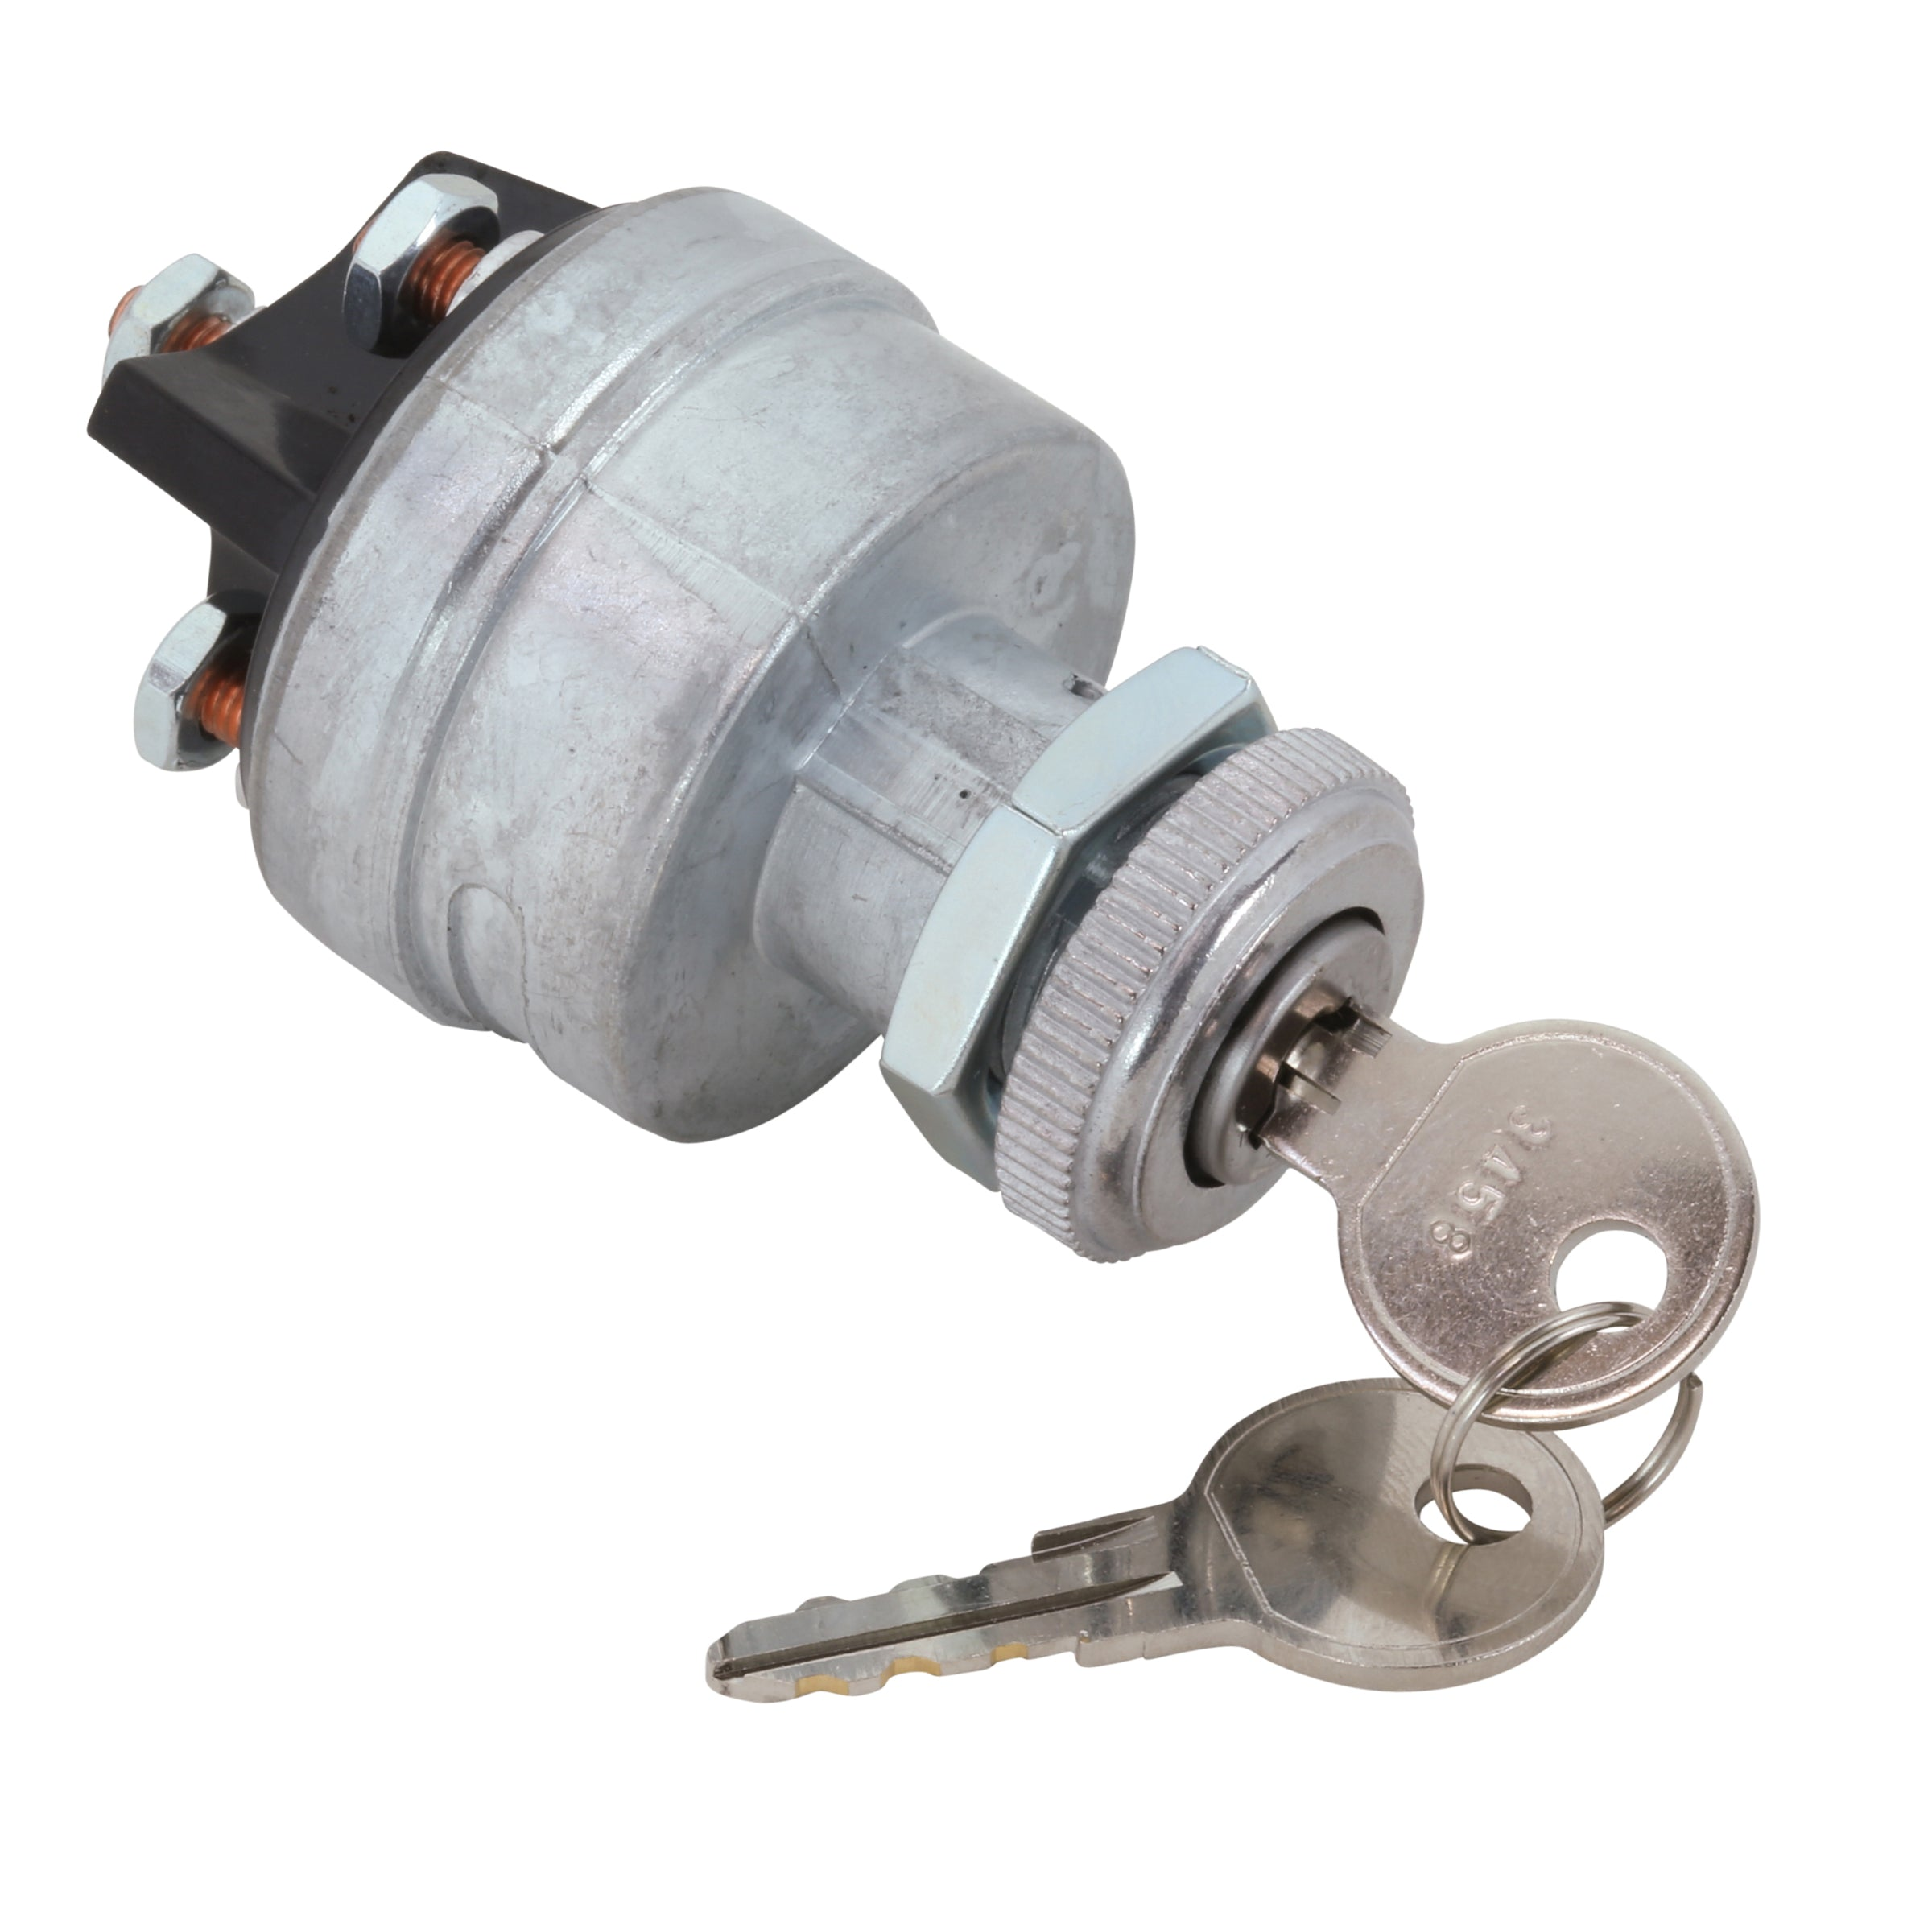 Universal Ignition Switch with Cylinder and Keys • 1932-48